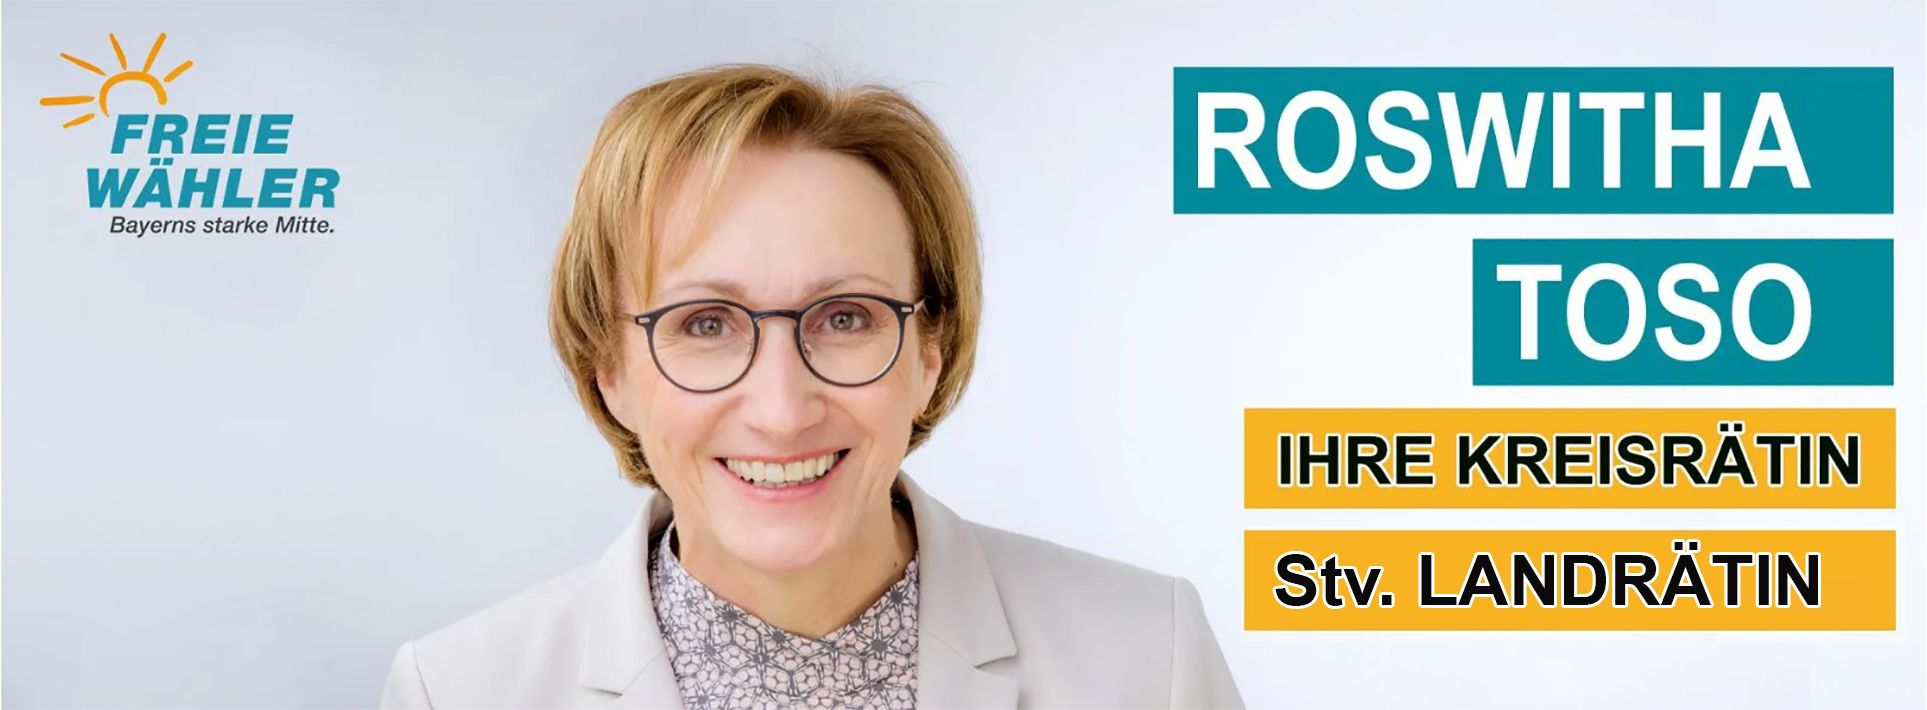 Roswitha Toso - Willkommen!   Roswitha Toso